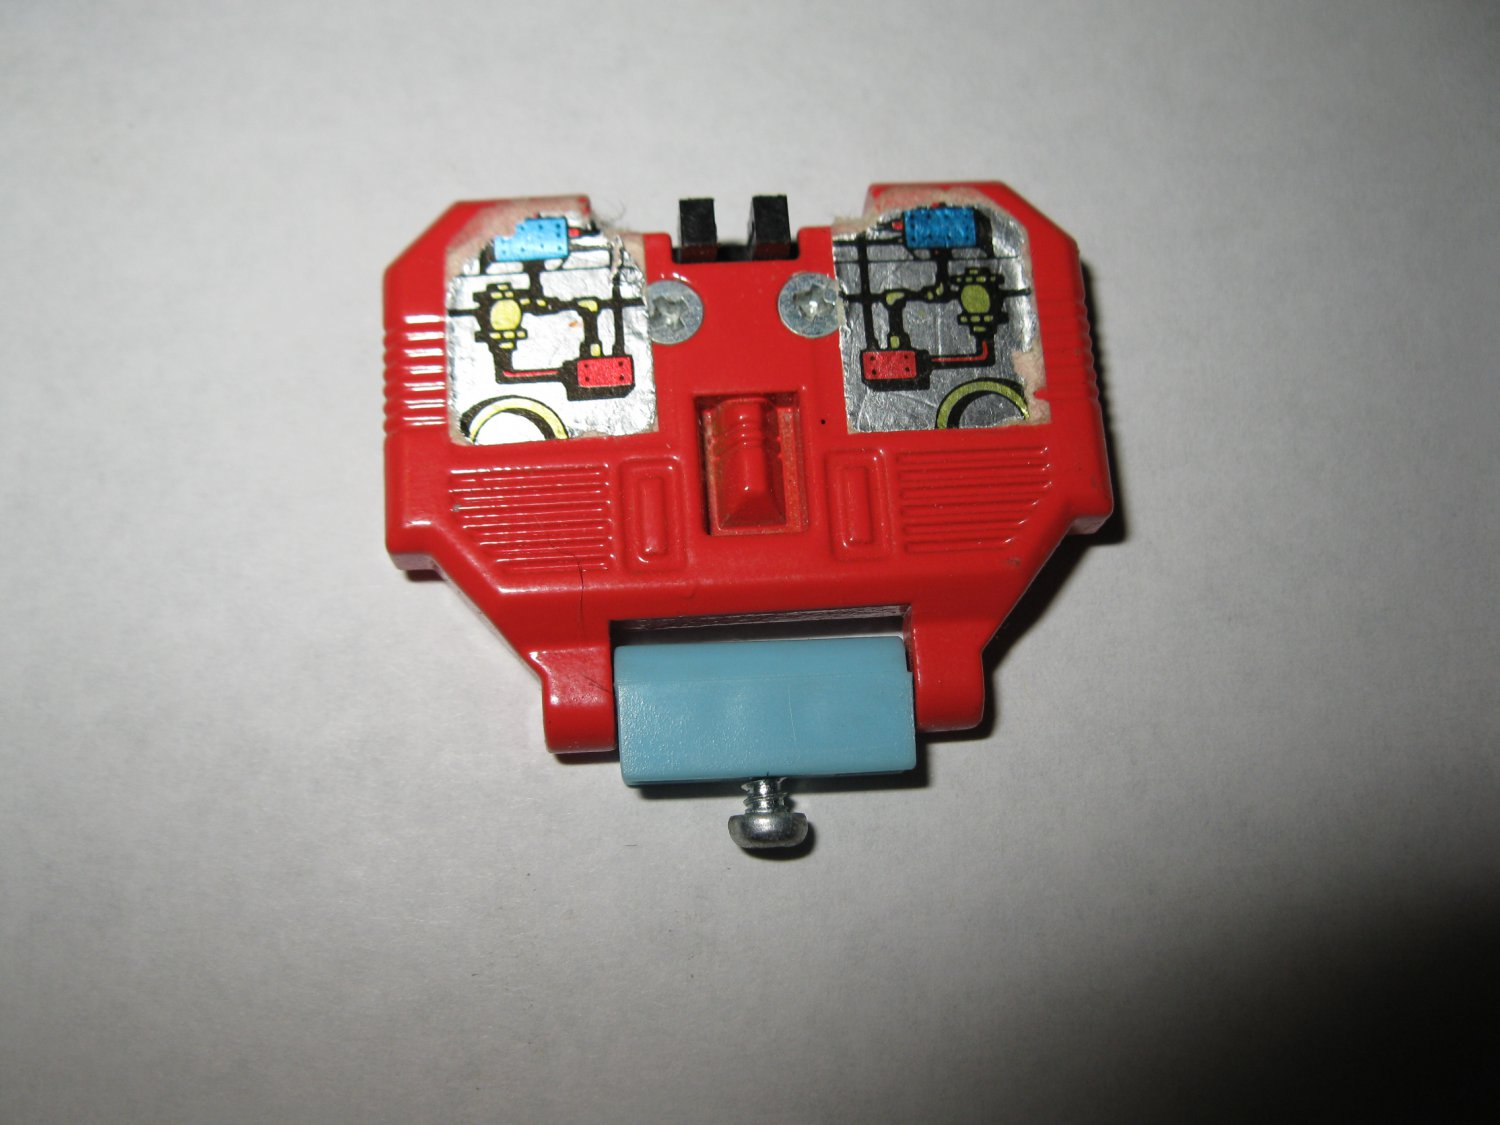 G1 Transformers Action figure part: 1986 Hot Spot - Metal Chest Plate